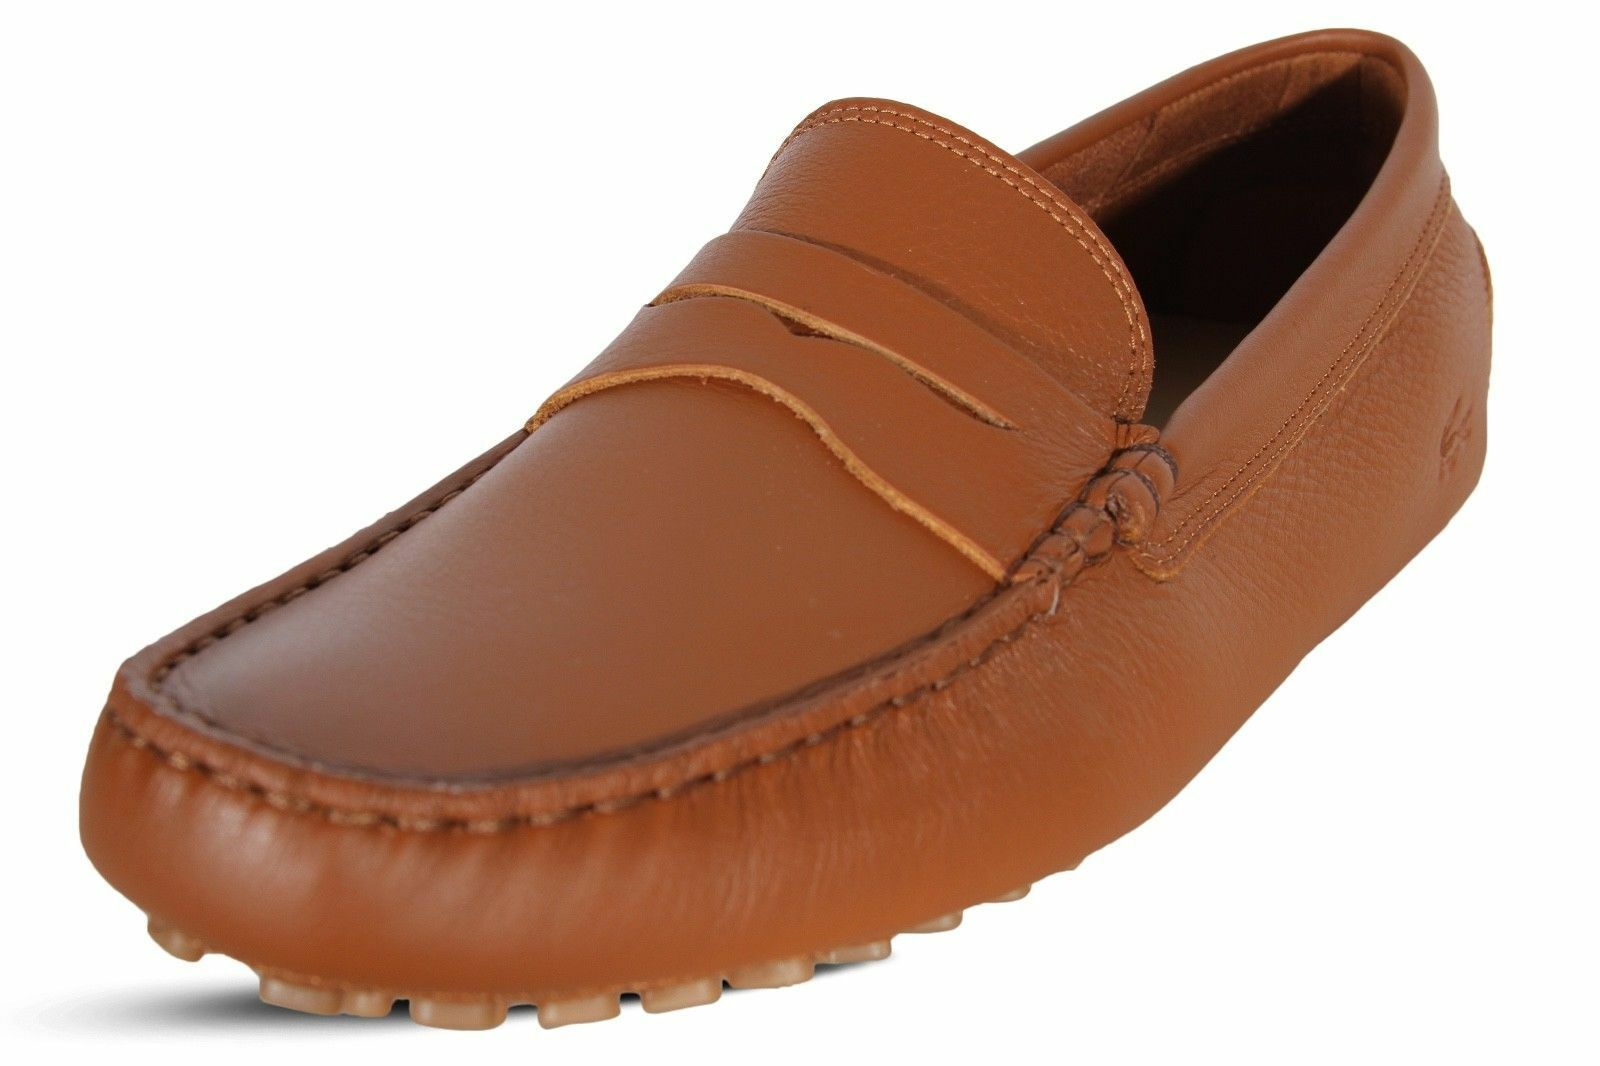 Lacoste shoes Concours 118 1 P CAM Mens Driving Loafers Leather Tan